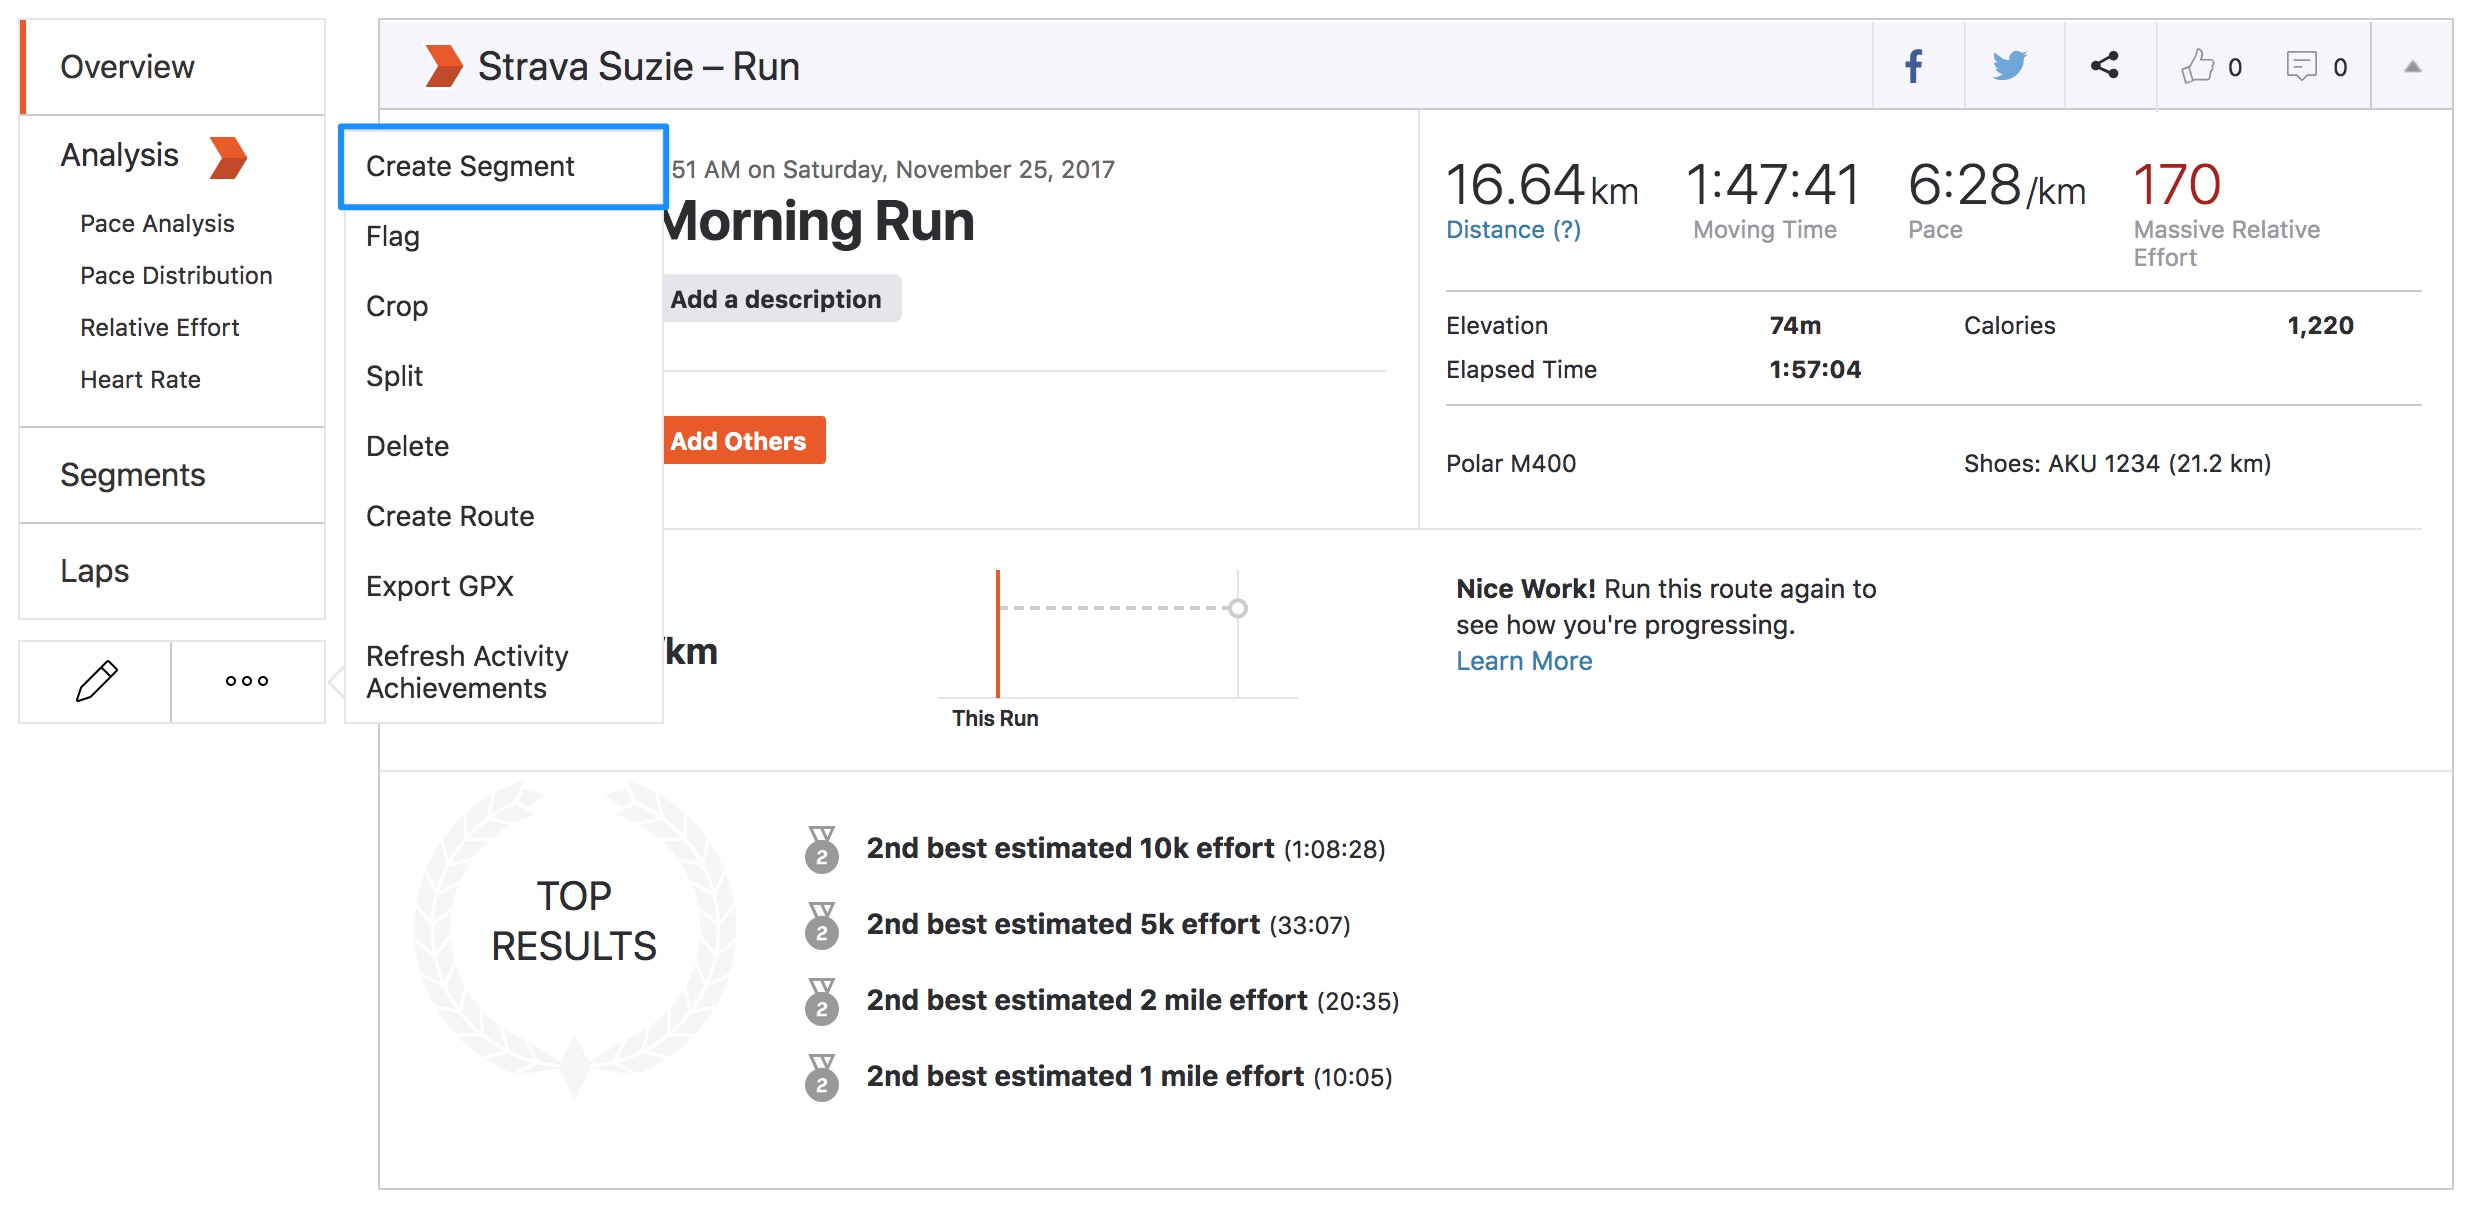 Morning_Run___Run___Strava.jpg